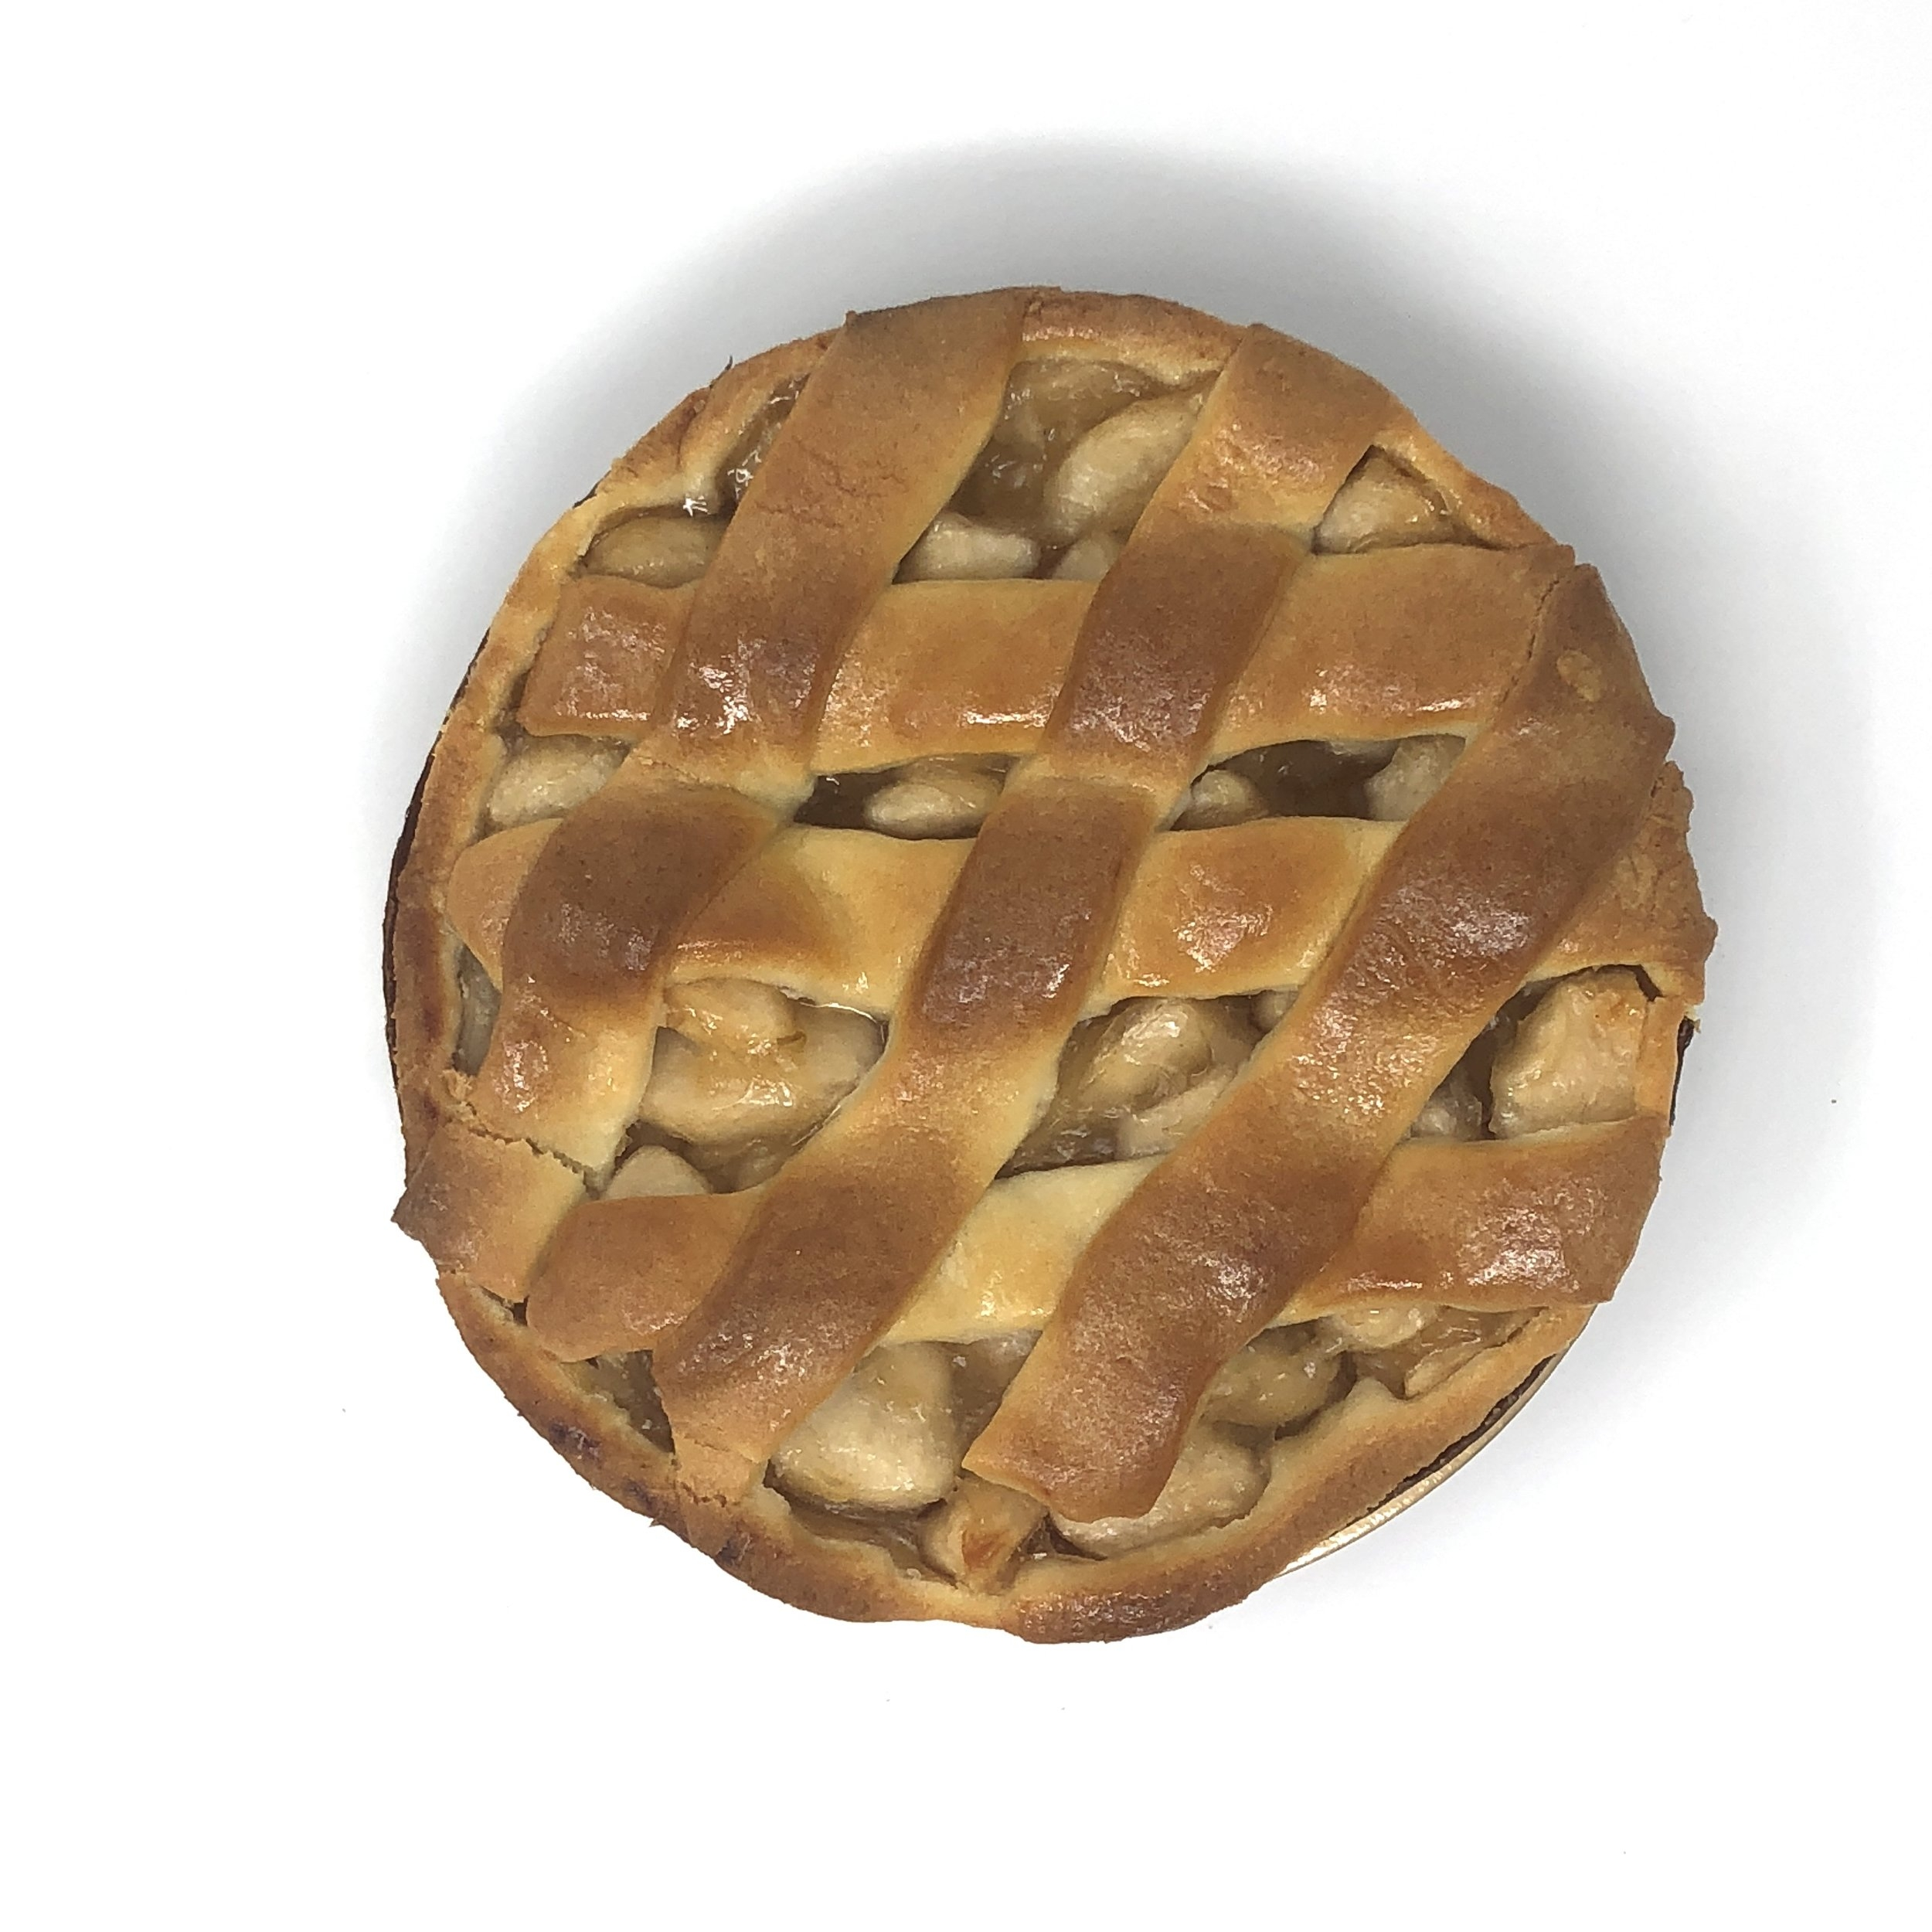 DUTCH APPLE TORTE - Available at all locations!